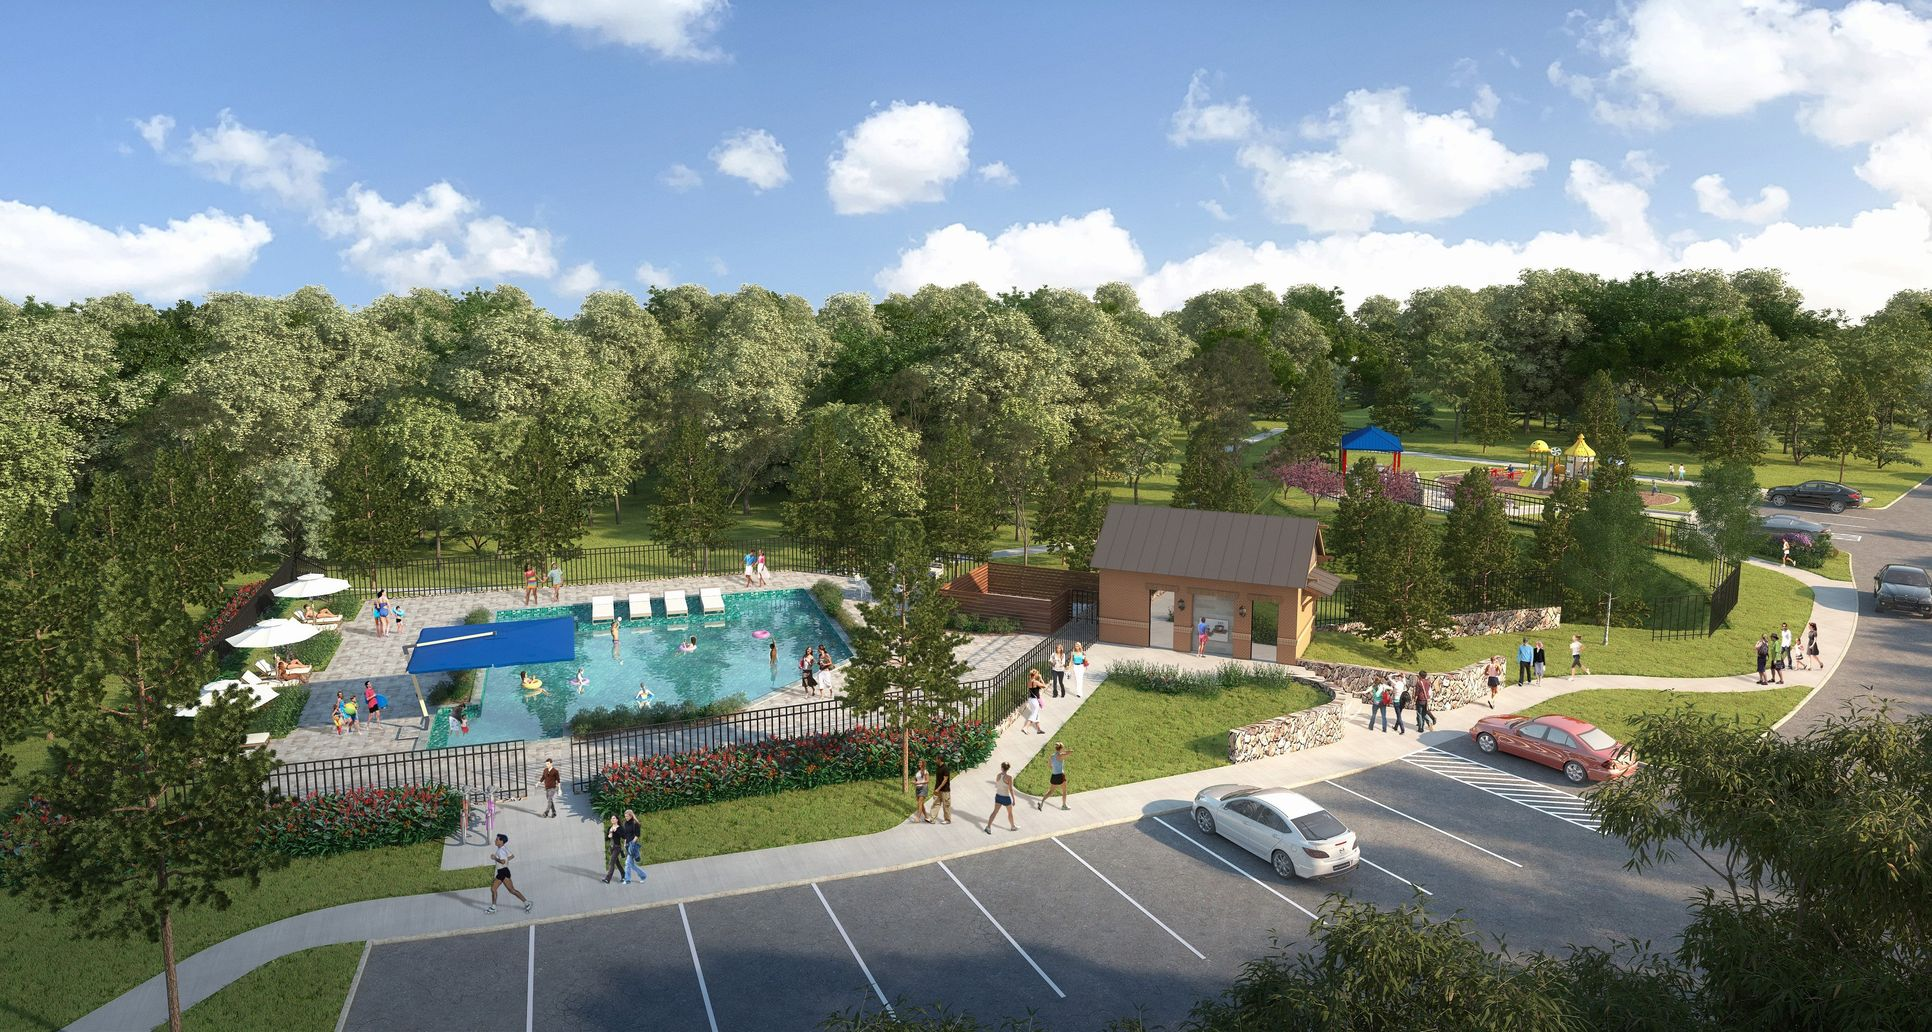 Future Community Pool